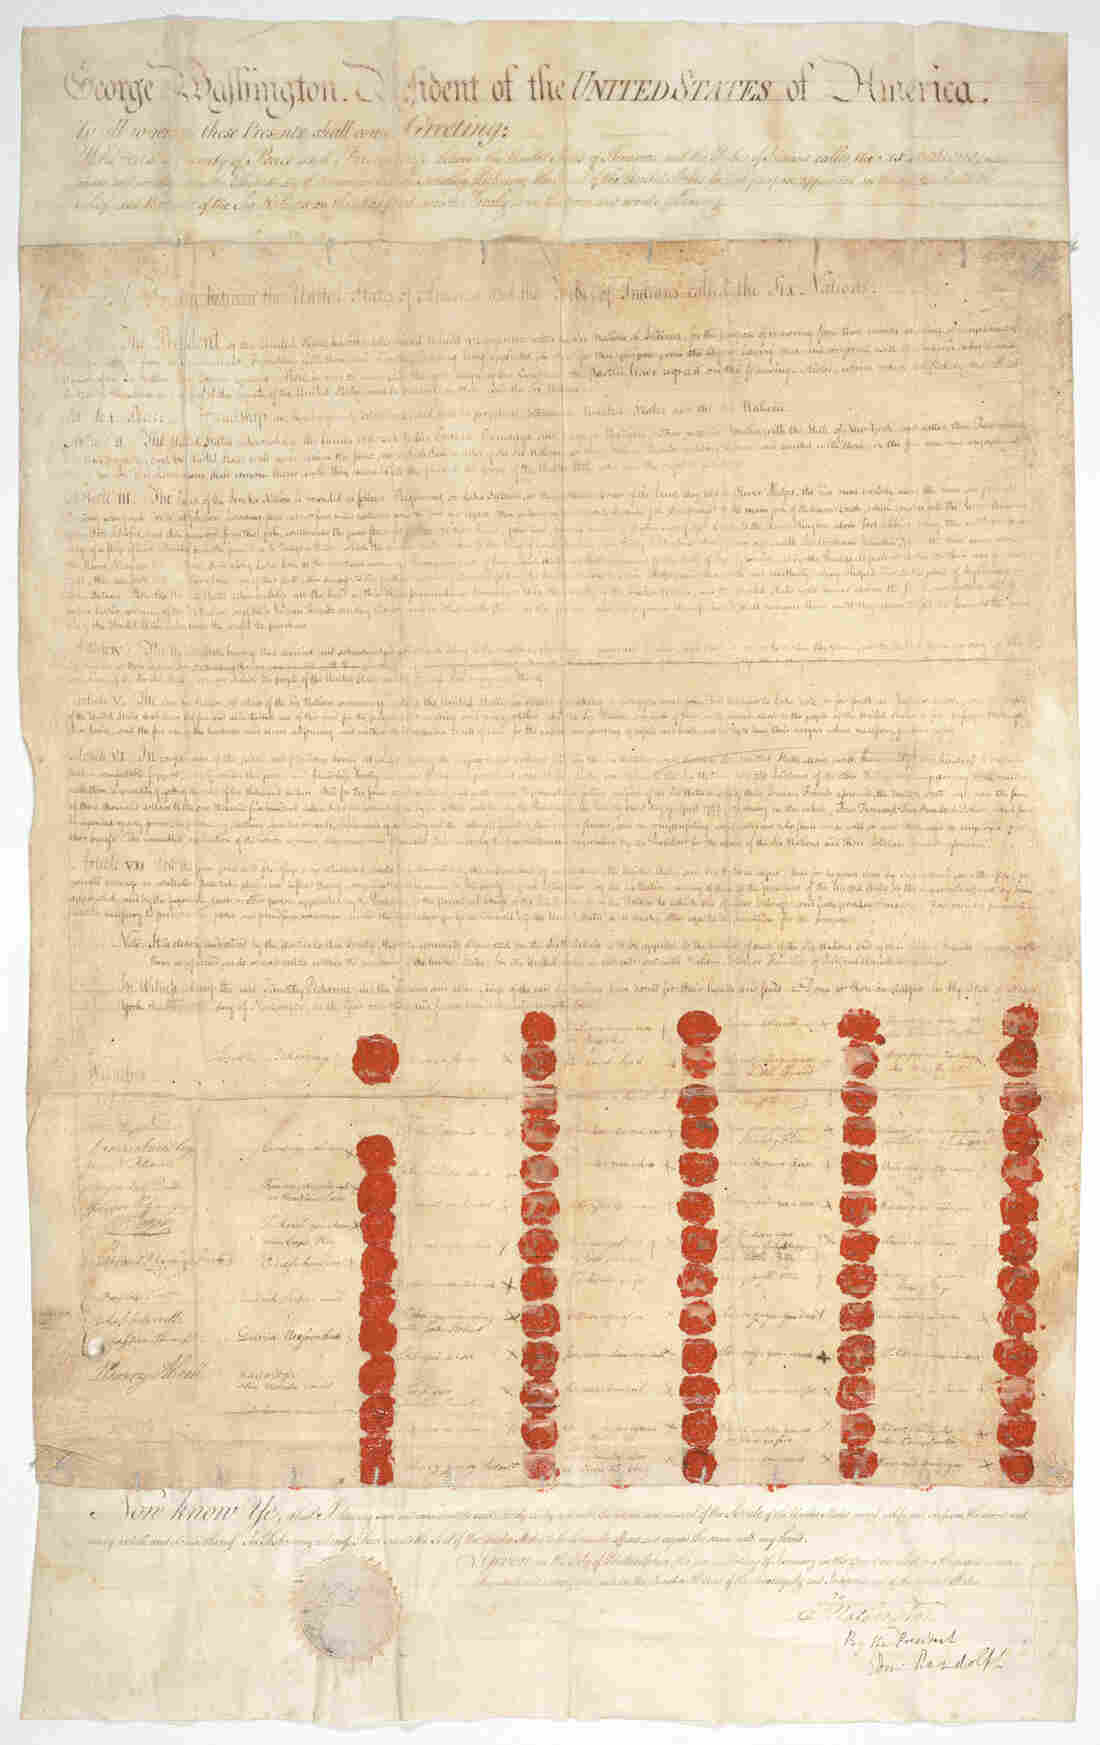 The Treaty of Canandaigua is one of the first treaties signed between Native American nations and the U.S.